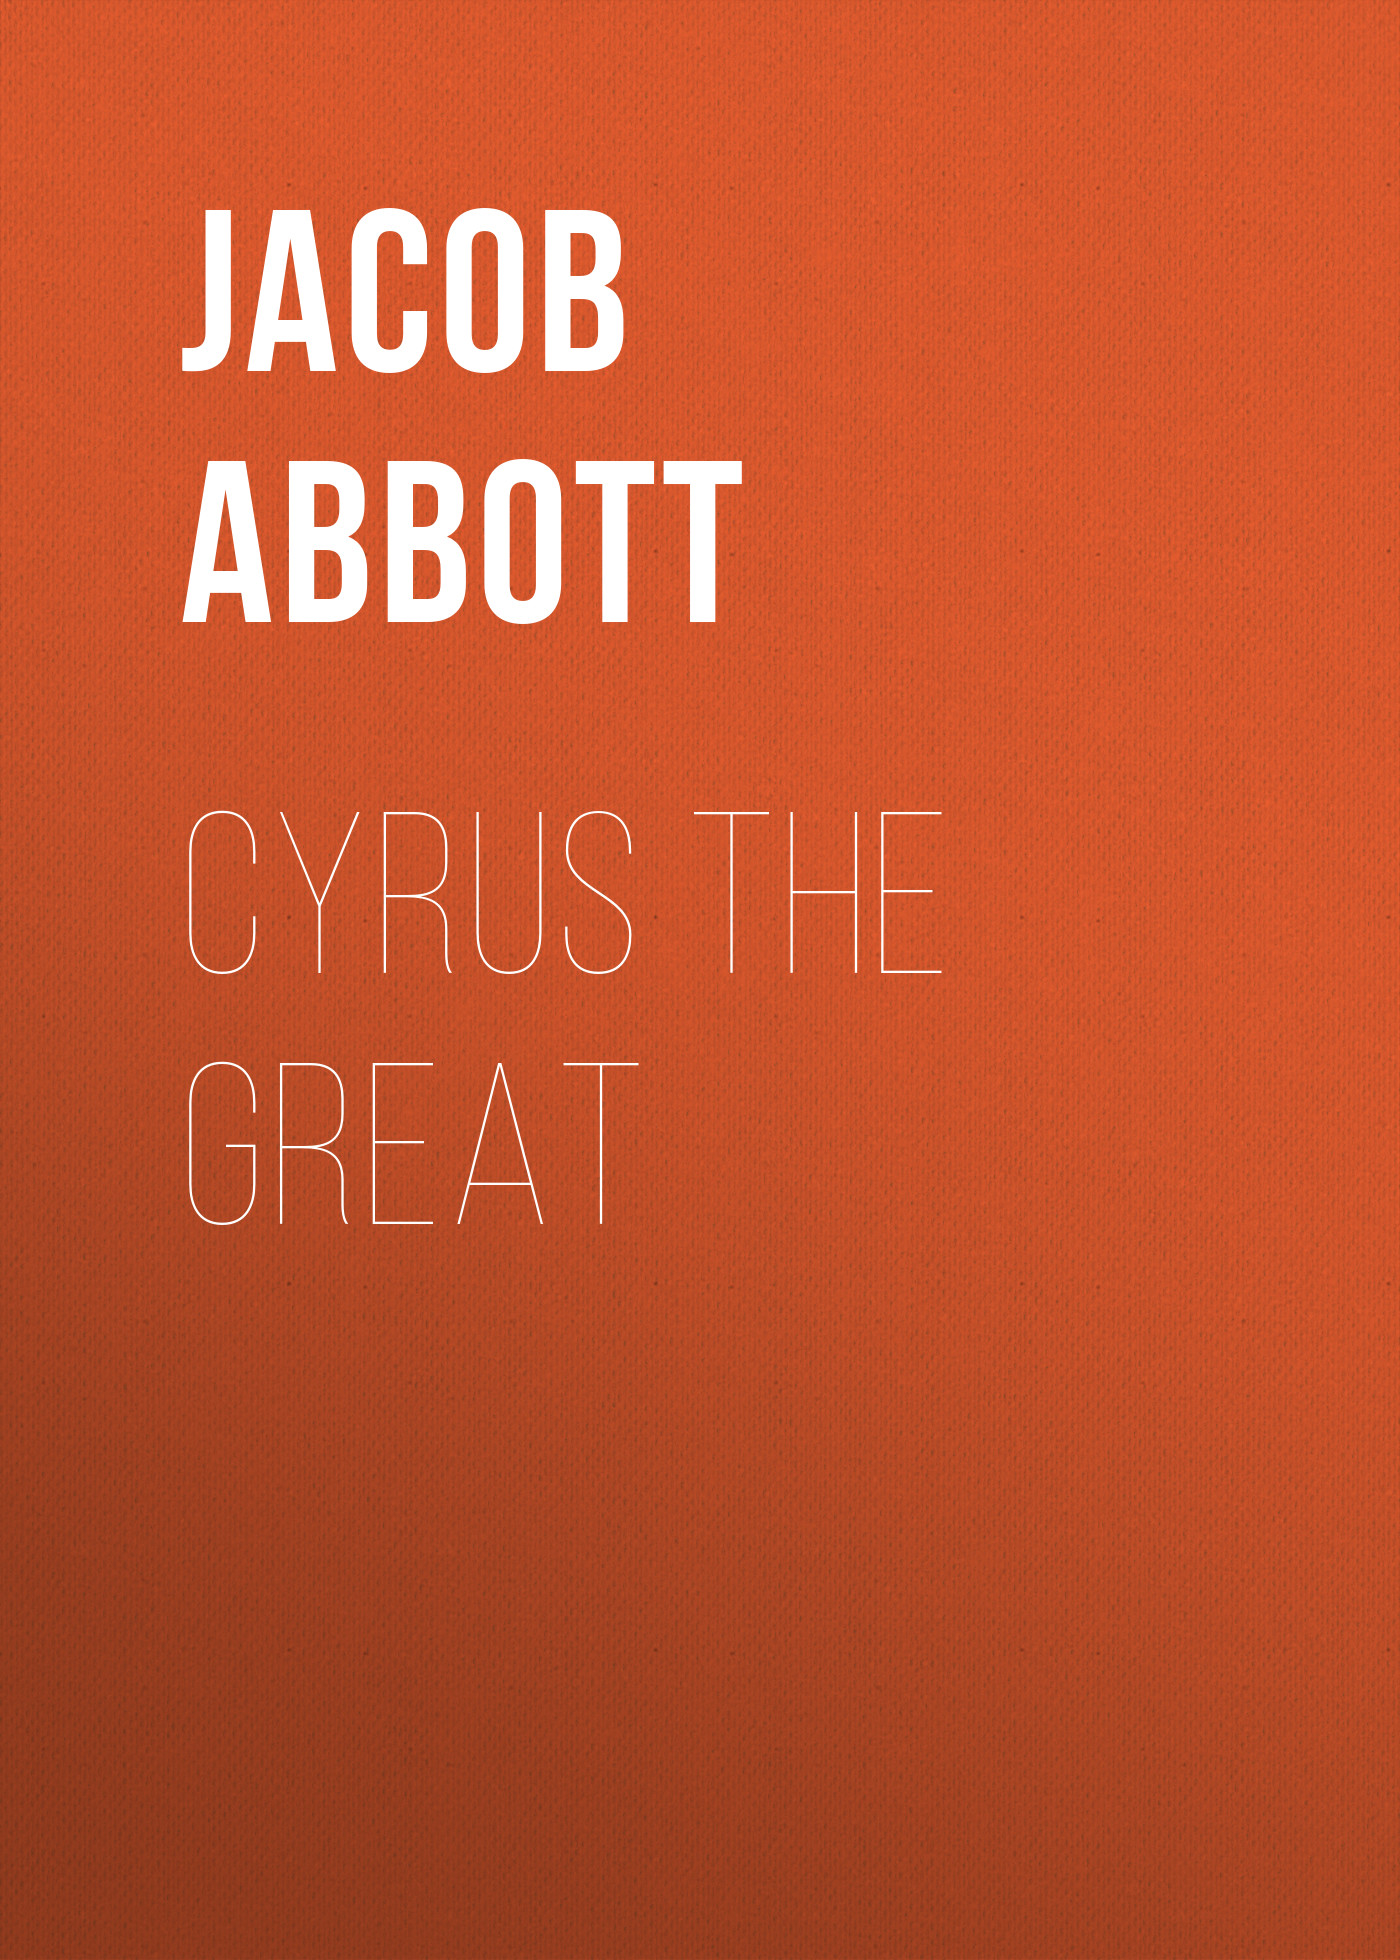 Abbott Jacob Cyrus the Great abbott jacob cyrus the great